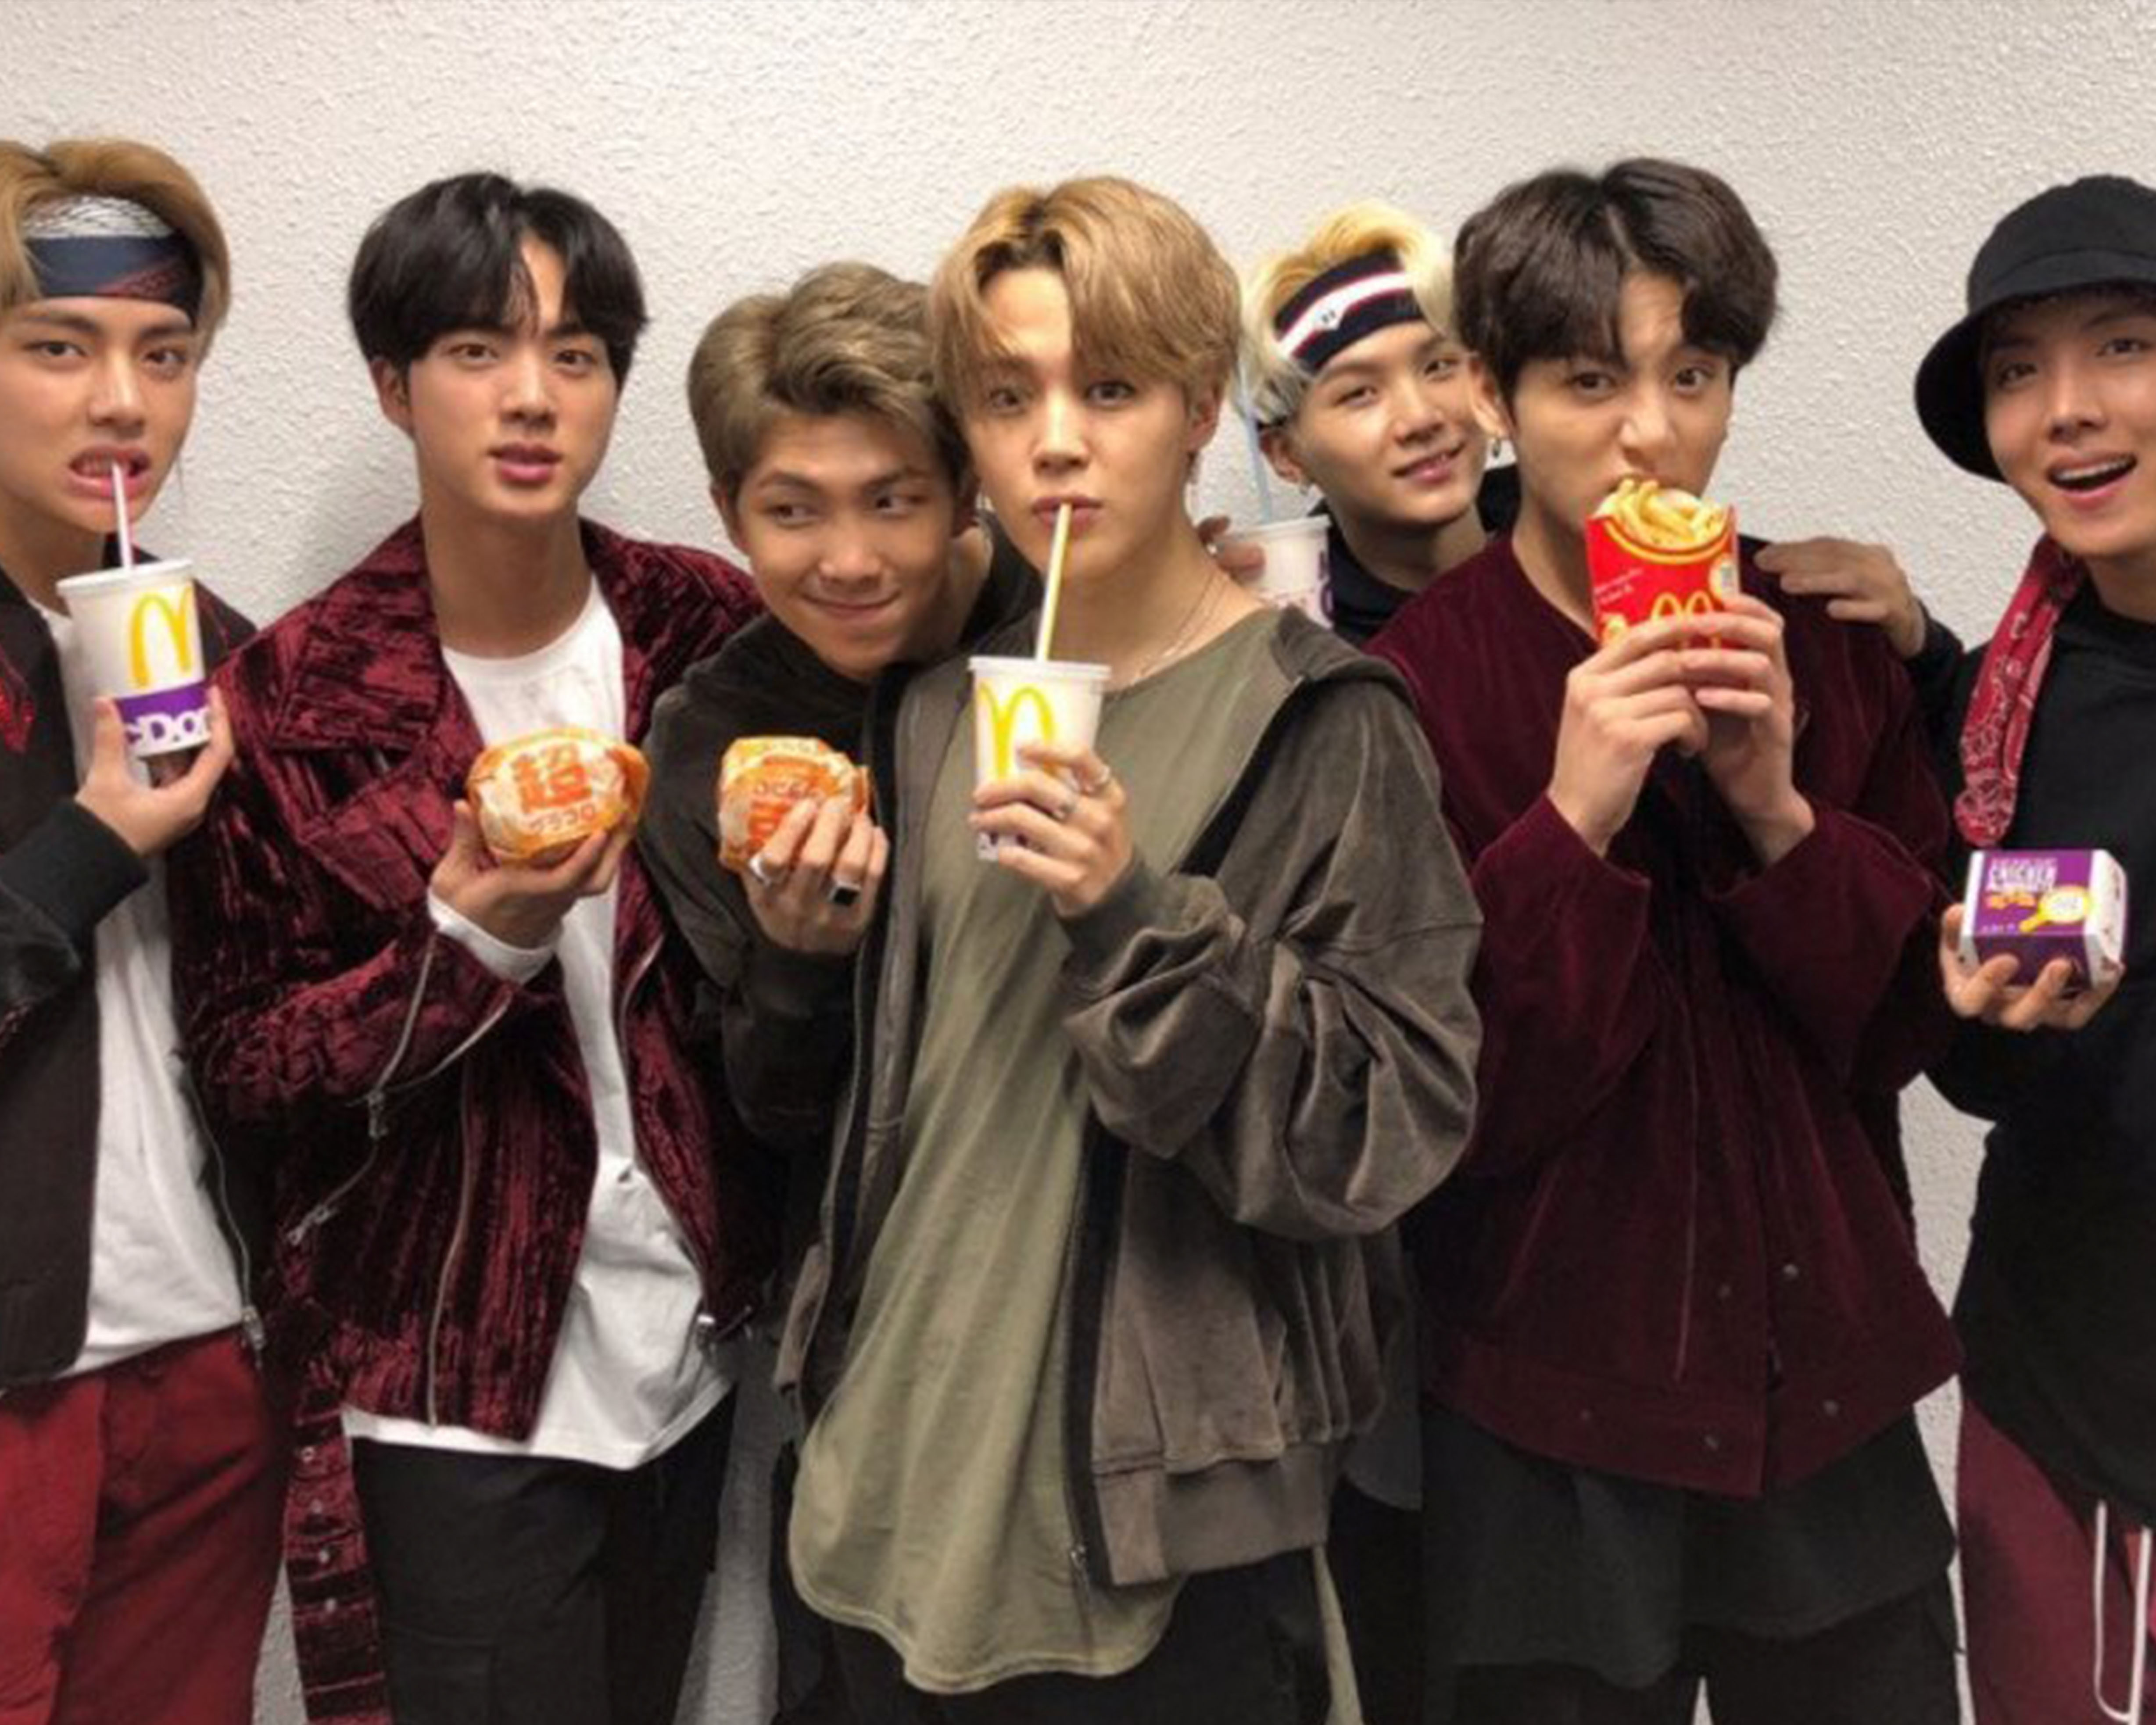 BTS McDonalds meal coming to Malta